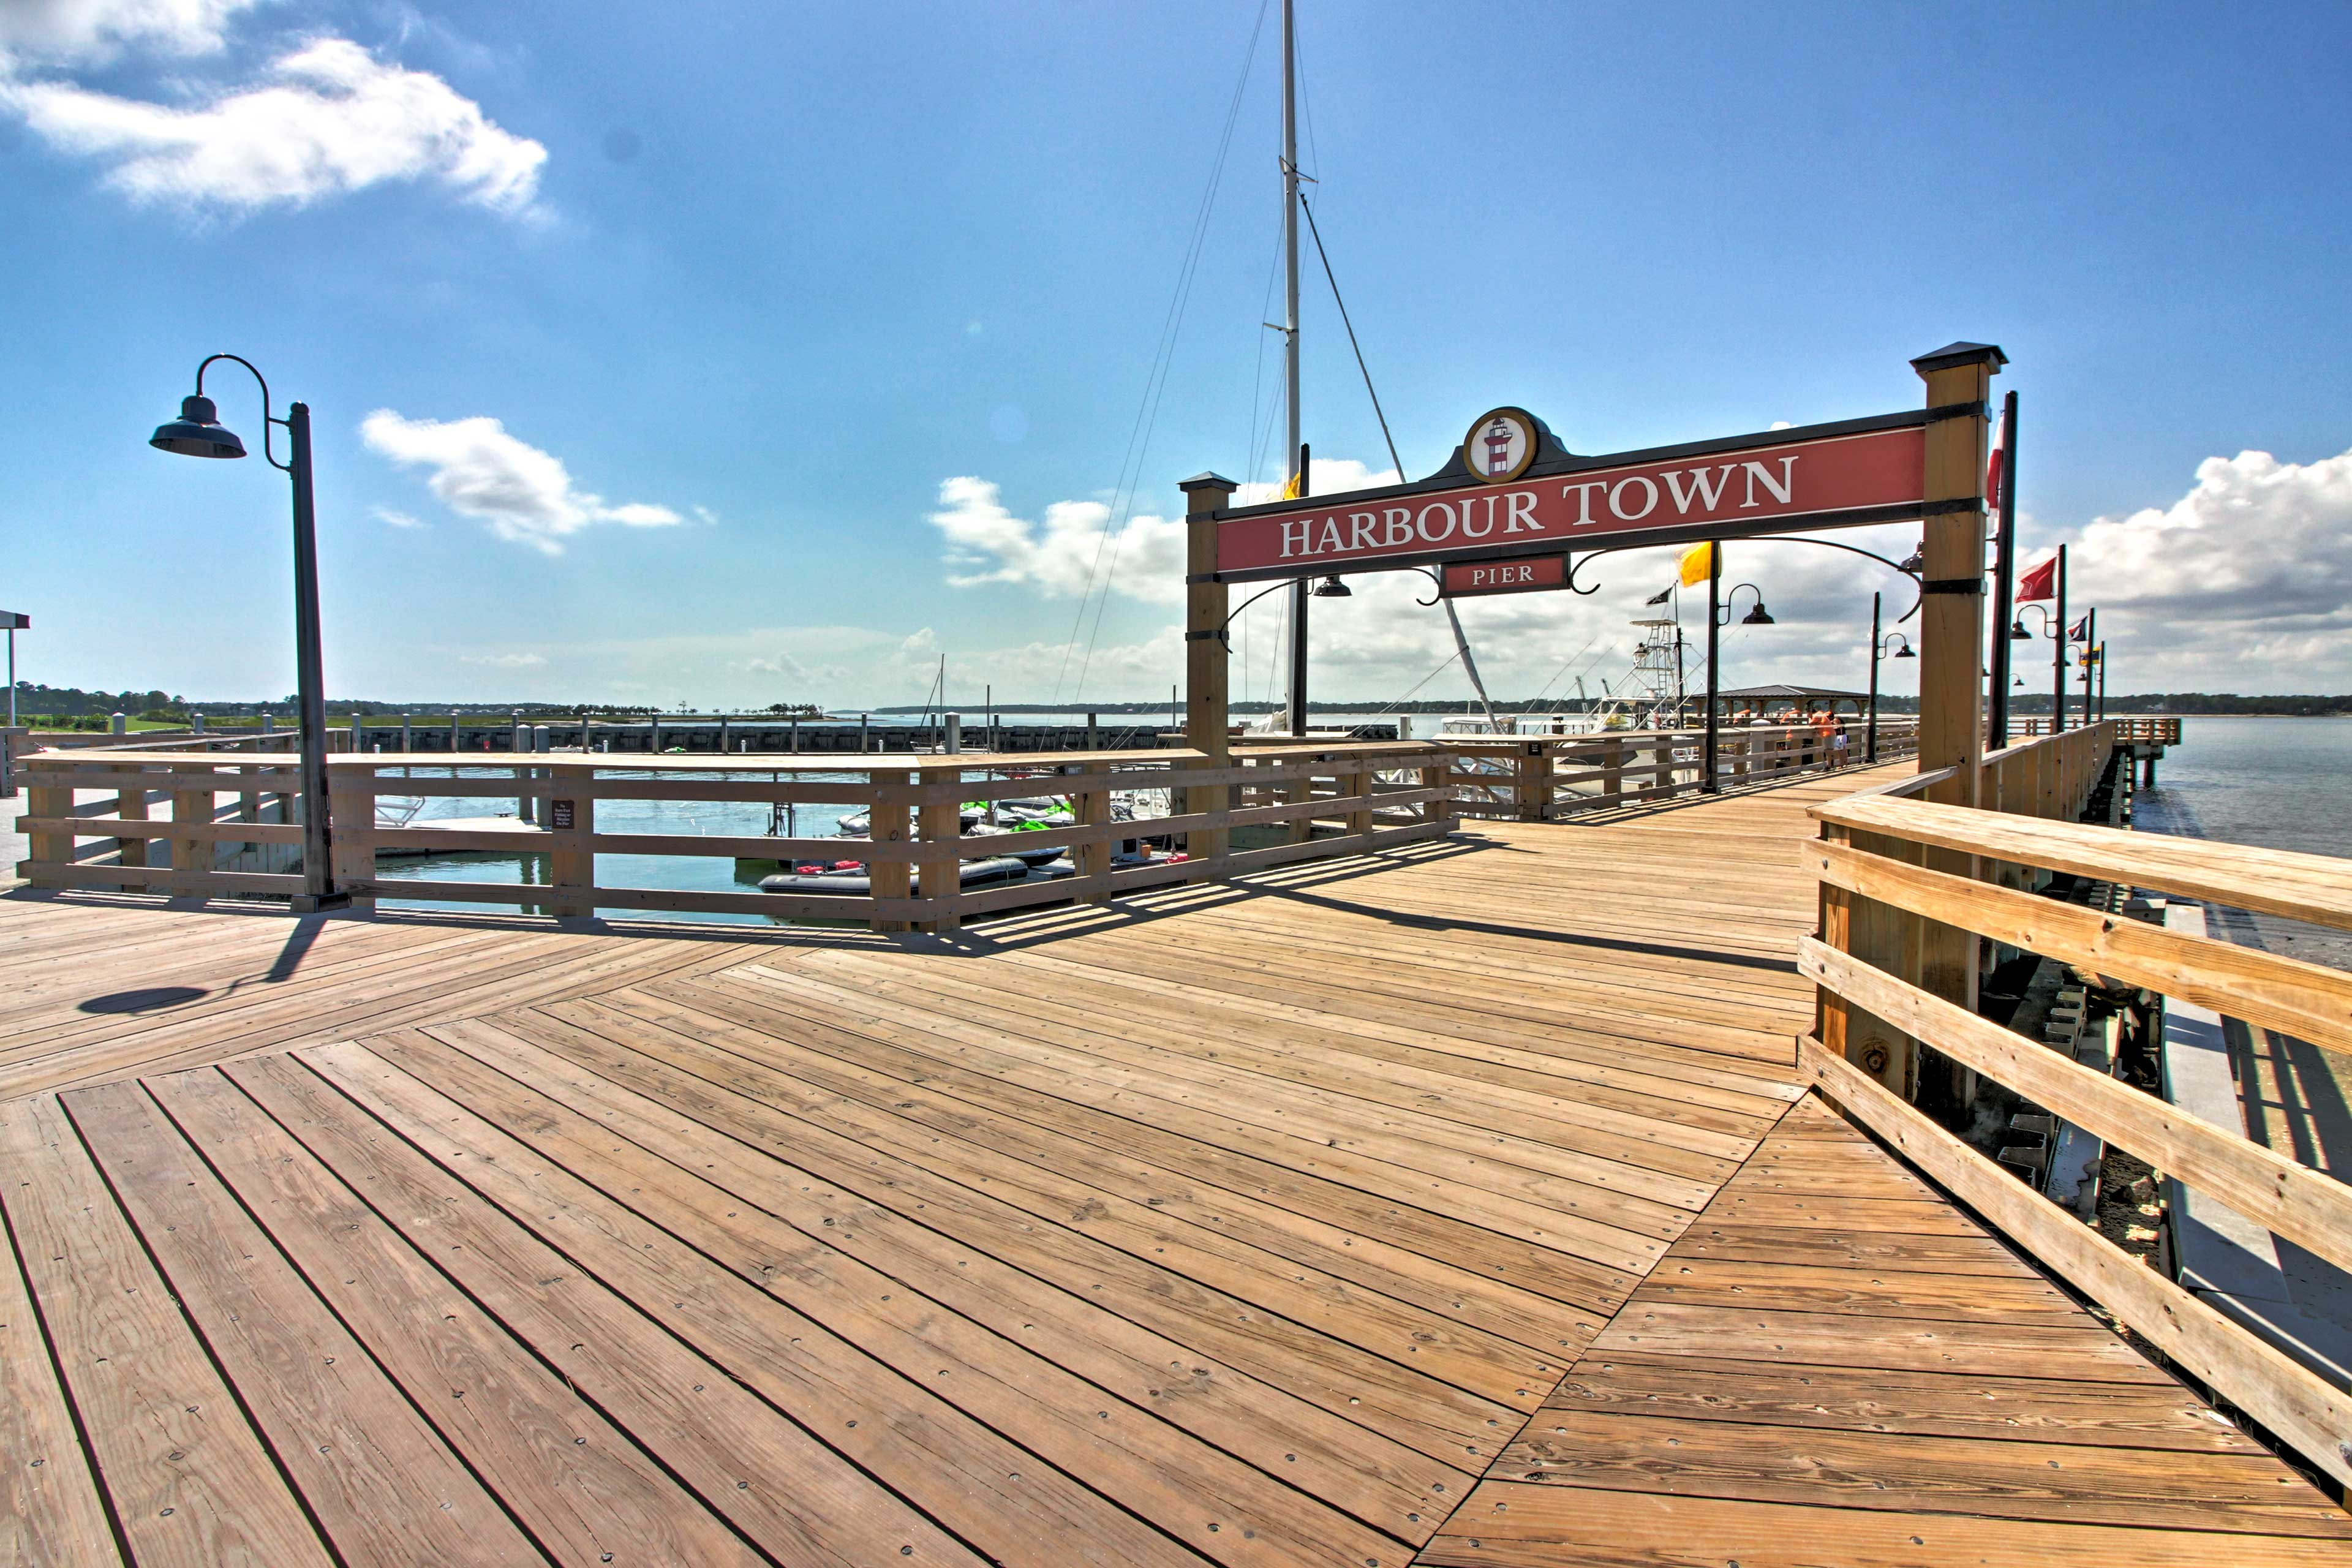 Harbour Town is just a 7-minute walk away!